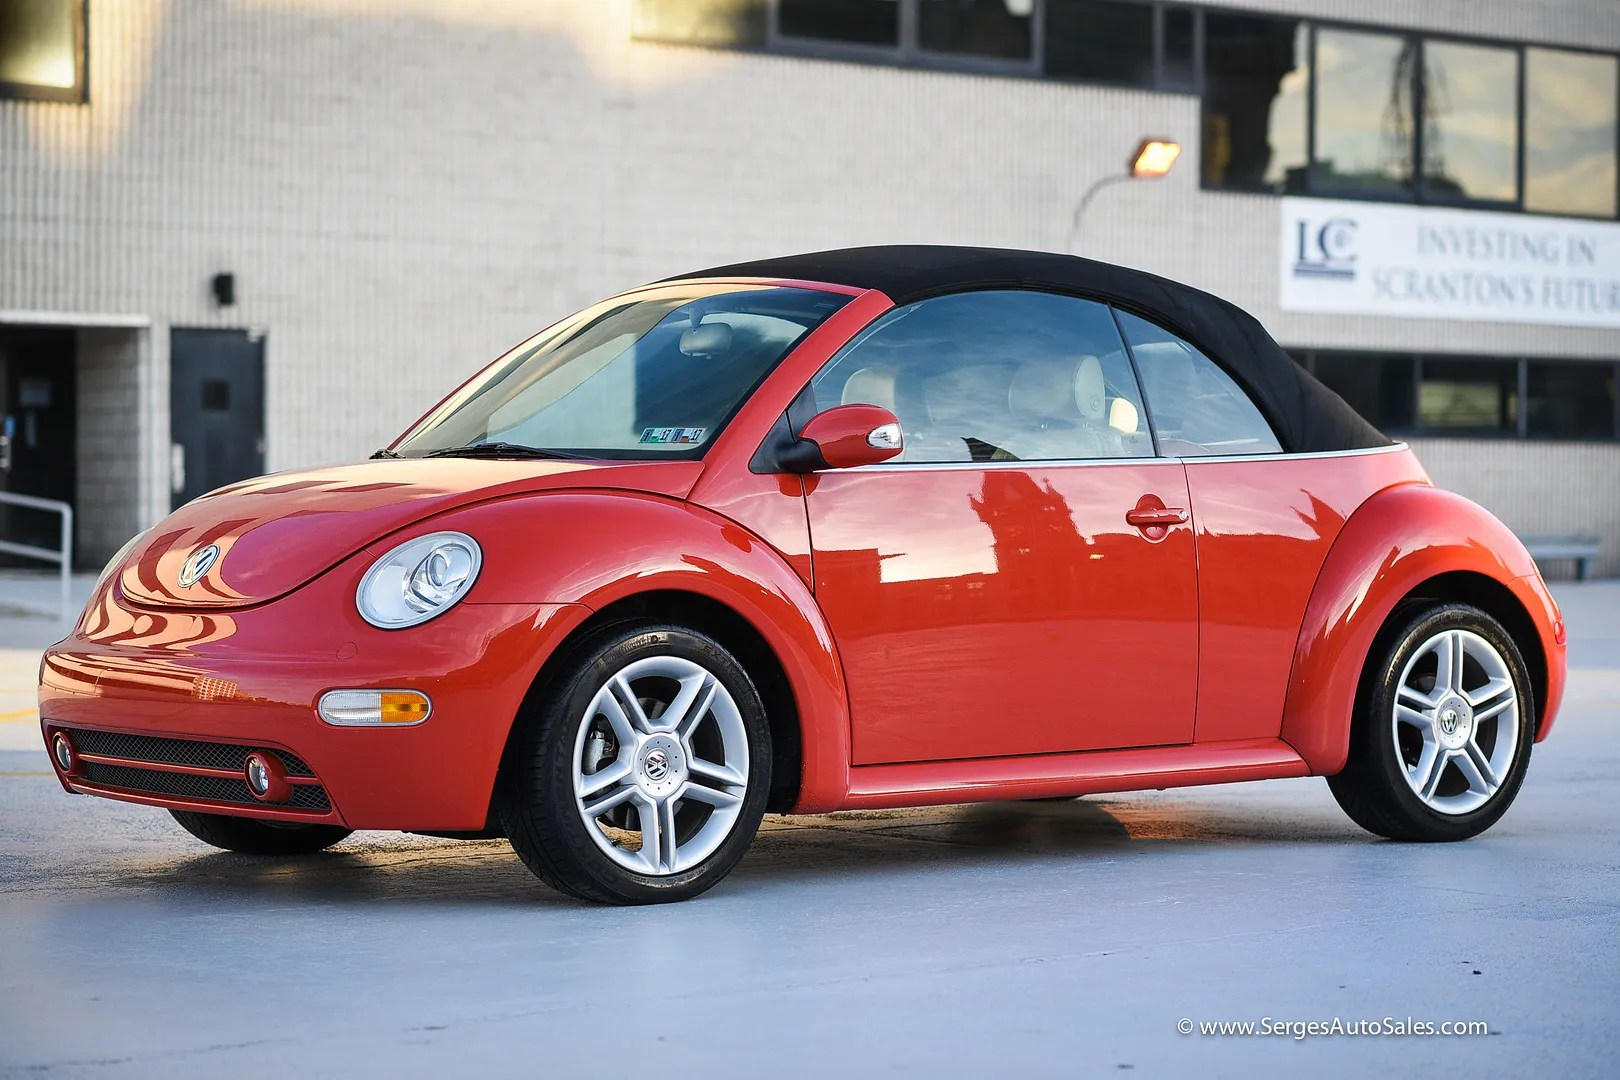 photo beetle-3_zpshfaoupcy.jpg